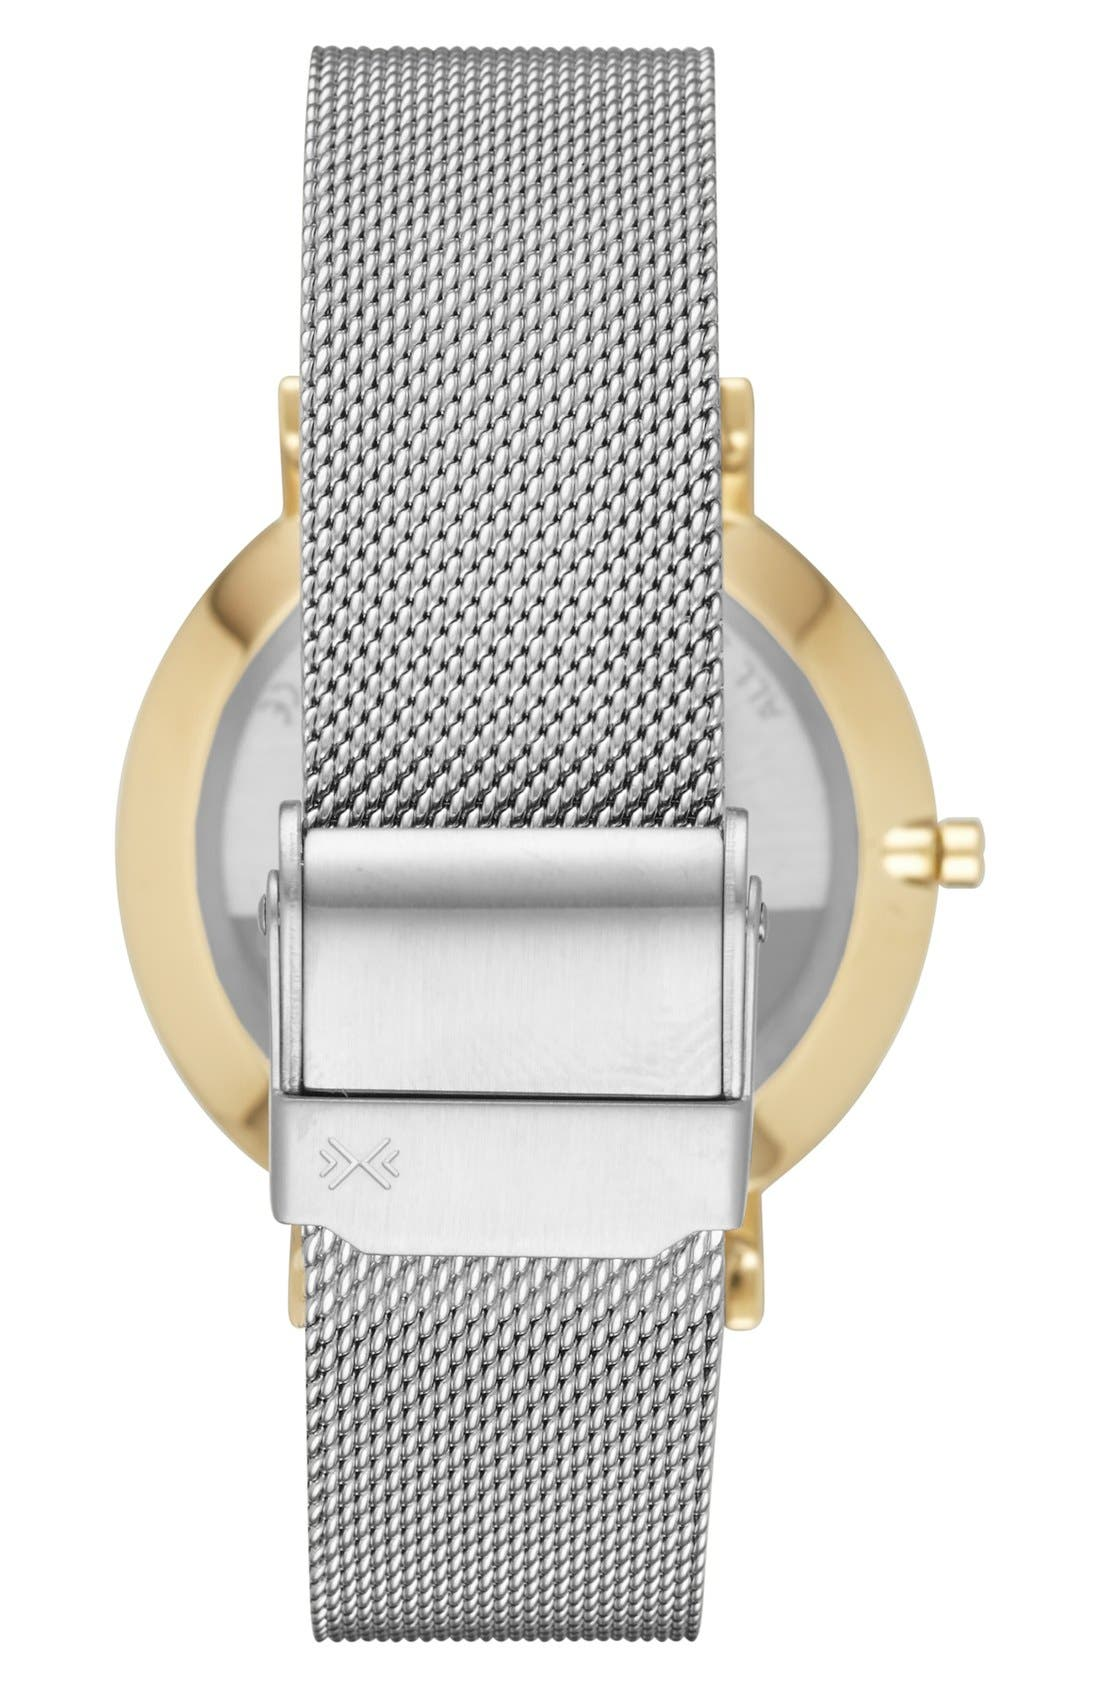 'Hald' Round Mesh Strap Watch, 34mm,                             Alternate thumbnail 2, color,                             Silver/ White/ Gold